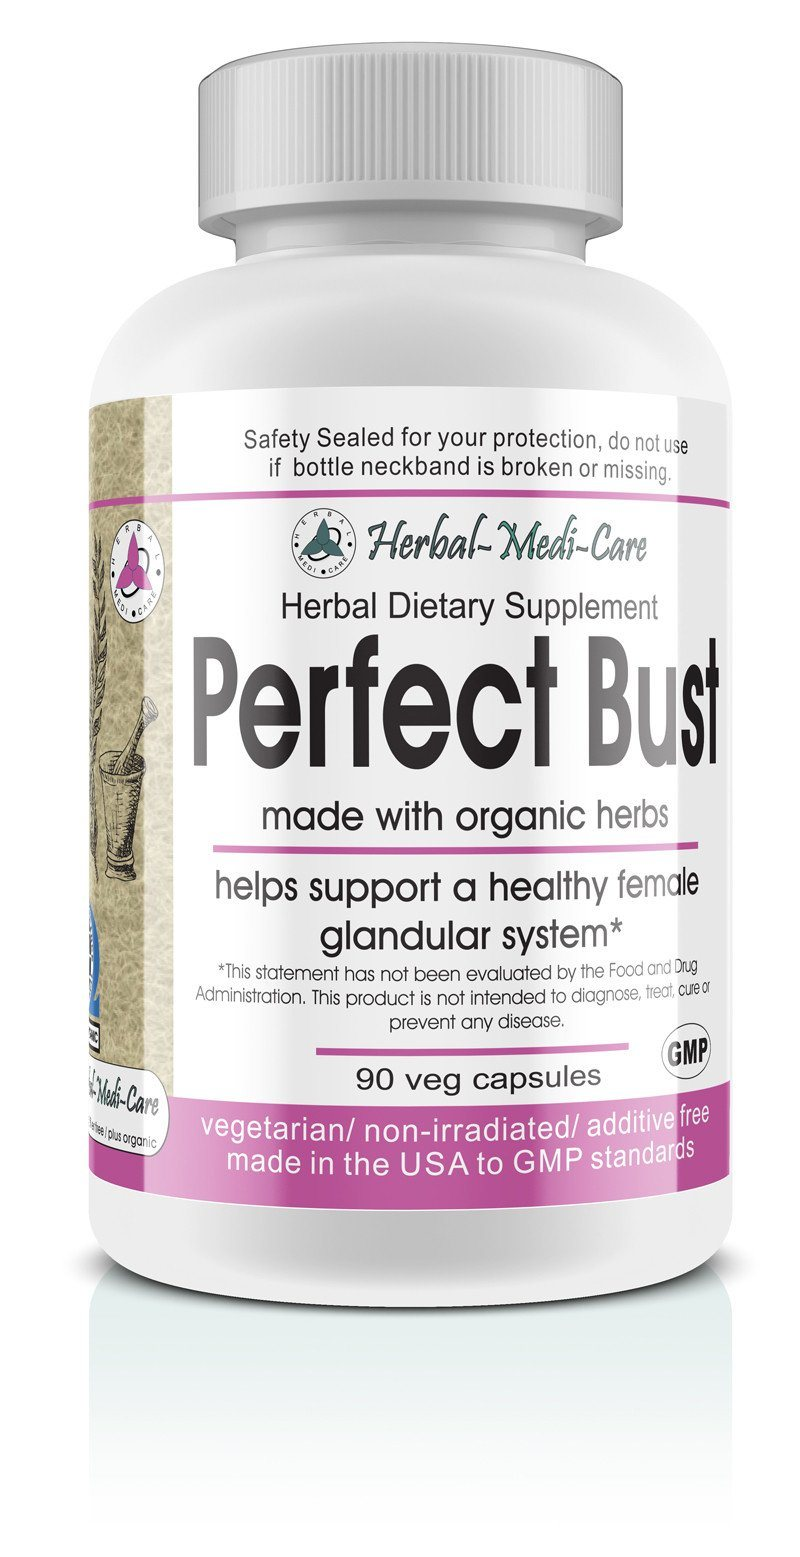 Herbal-Medi-Care Whole Food Perfect Bust (Breast Health) Vegetarian Capsules; 90-Count, Made with Organic - Herbal-Medi-Care Whole Food Perfect Bust (Breast Health) Vegetarian Capsules; 90-Count, Made with Organic - Herbal-Medi-Care Whole Food Perfect Bust (Breast Health) Vegetarian Capsules; 90-Count, Made with Organic